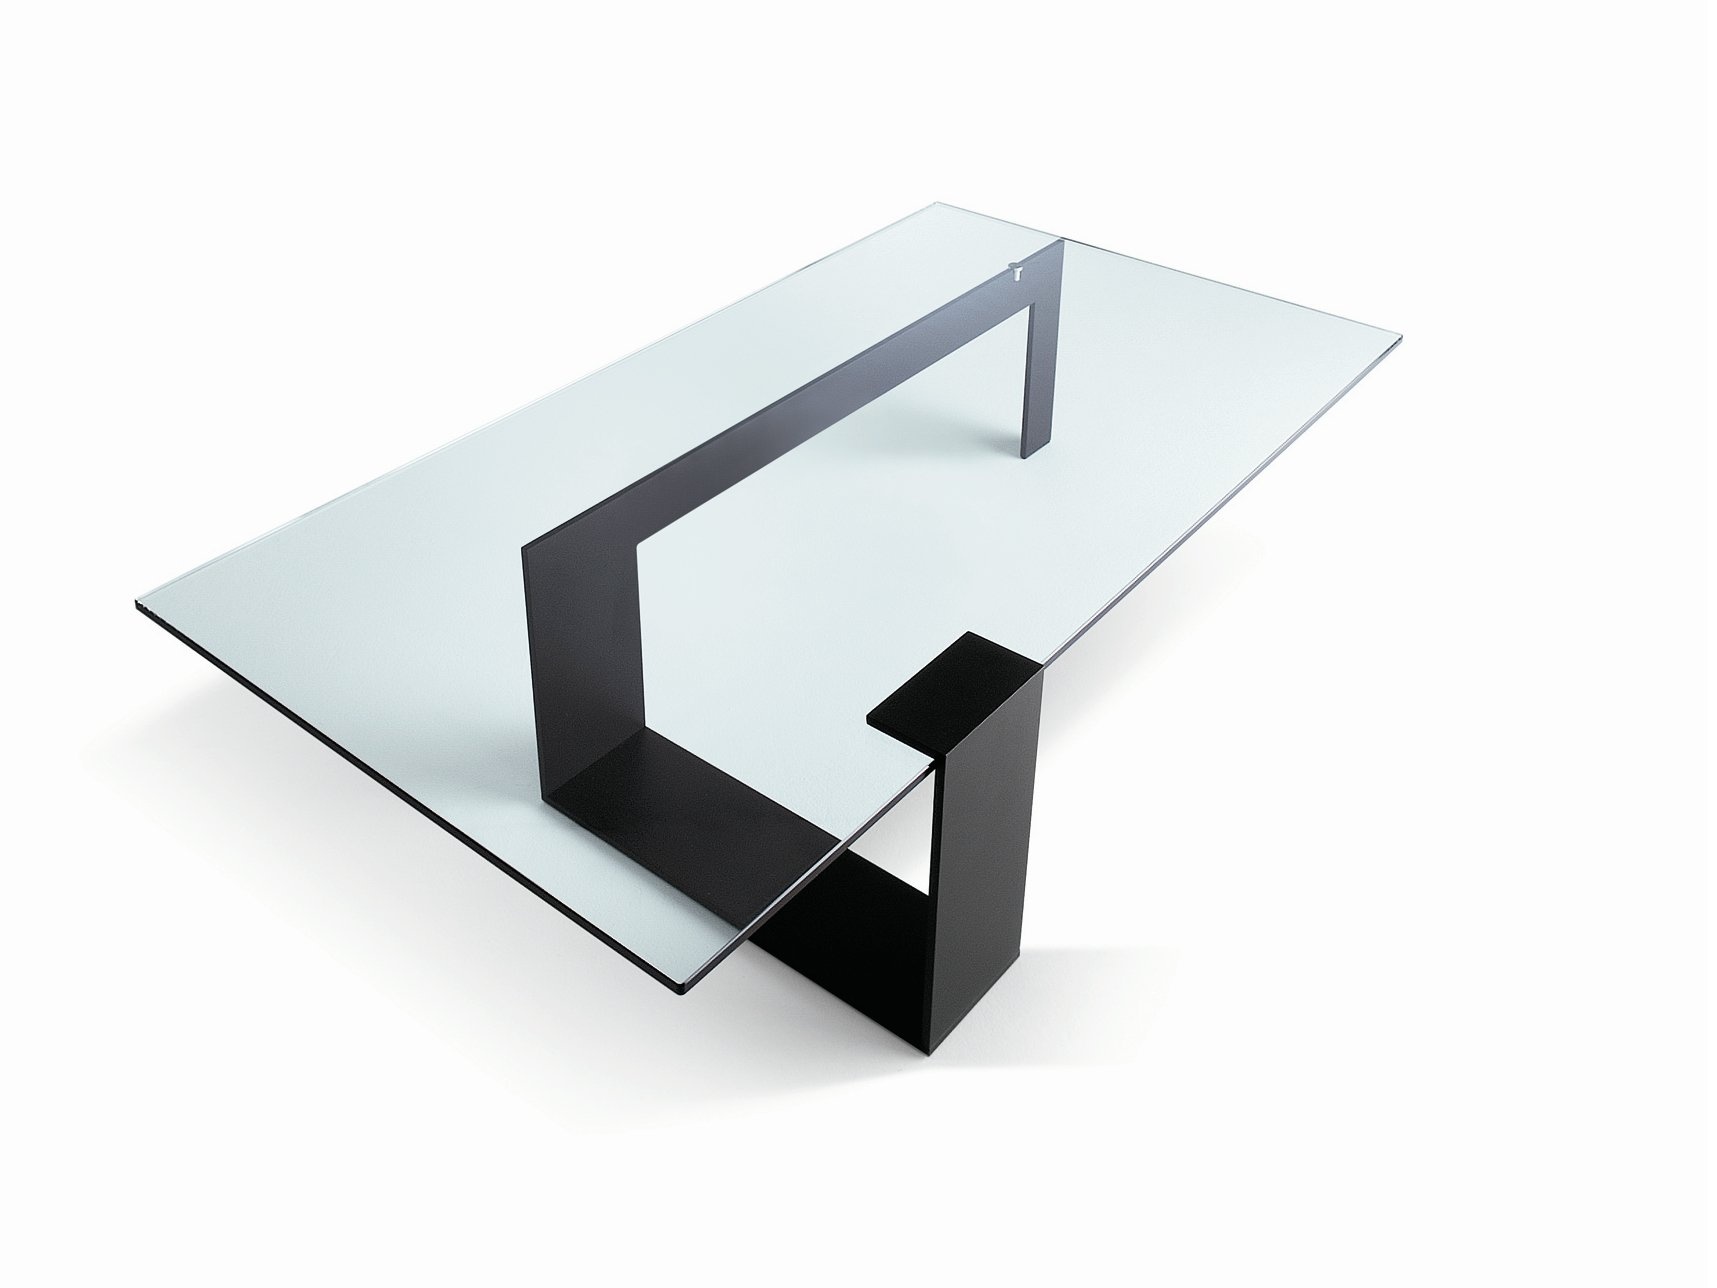 Table basse en verre plinsky by t d tonelli design design giulio mancini - Table basse verre design ...